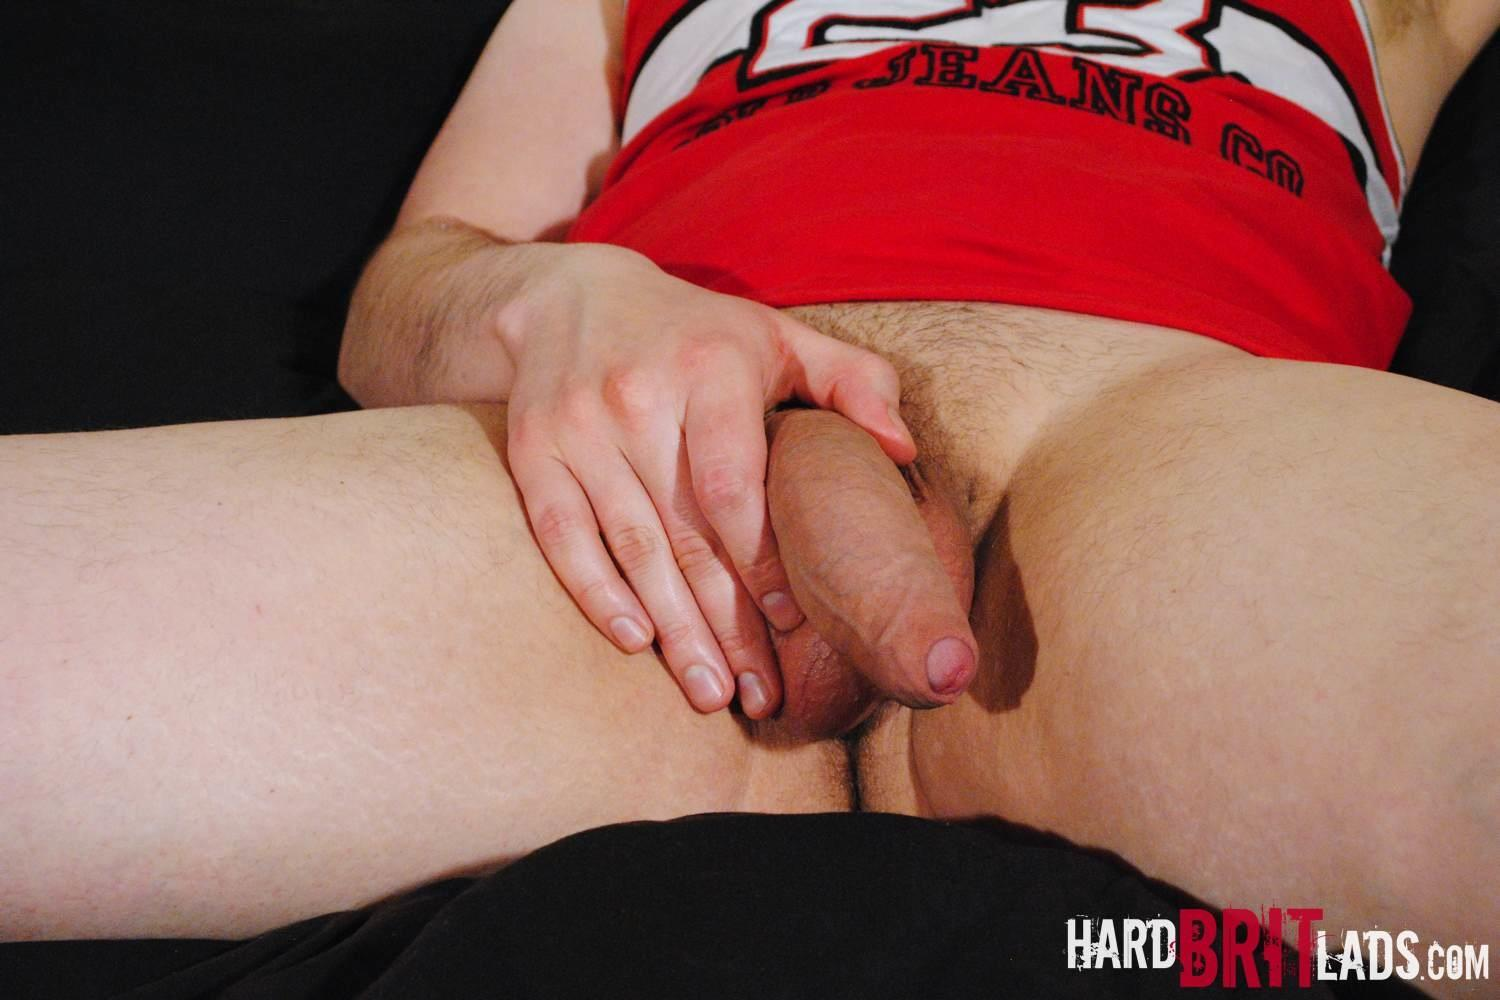 Hard-Brit-Lads-Jon-Bull-British-Skinhead-With-A-Big-Thick-Uncut-Cock-Amateur-Gay-Porn-05 Straight British Skinhead Jerking His Big Thick Veiny Uncut Cock